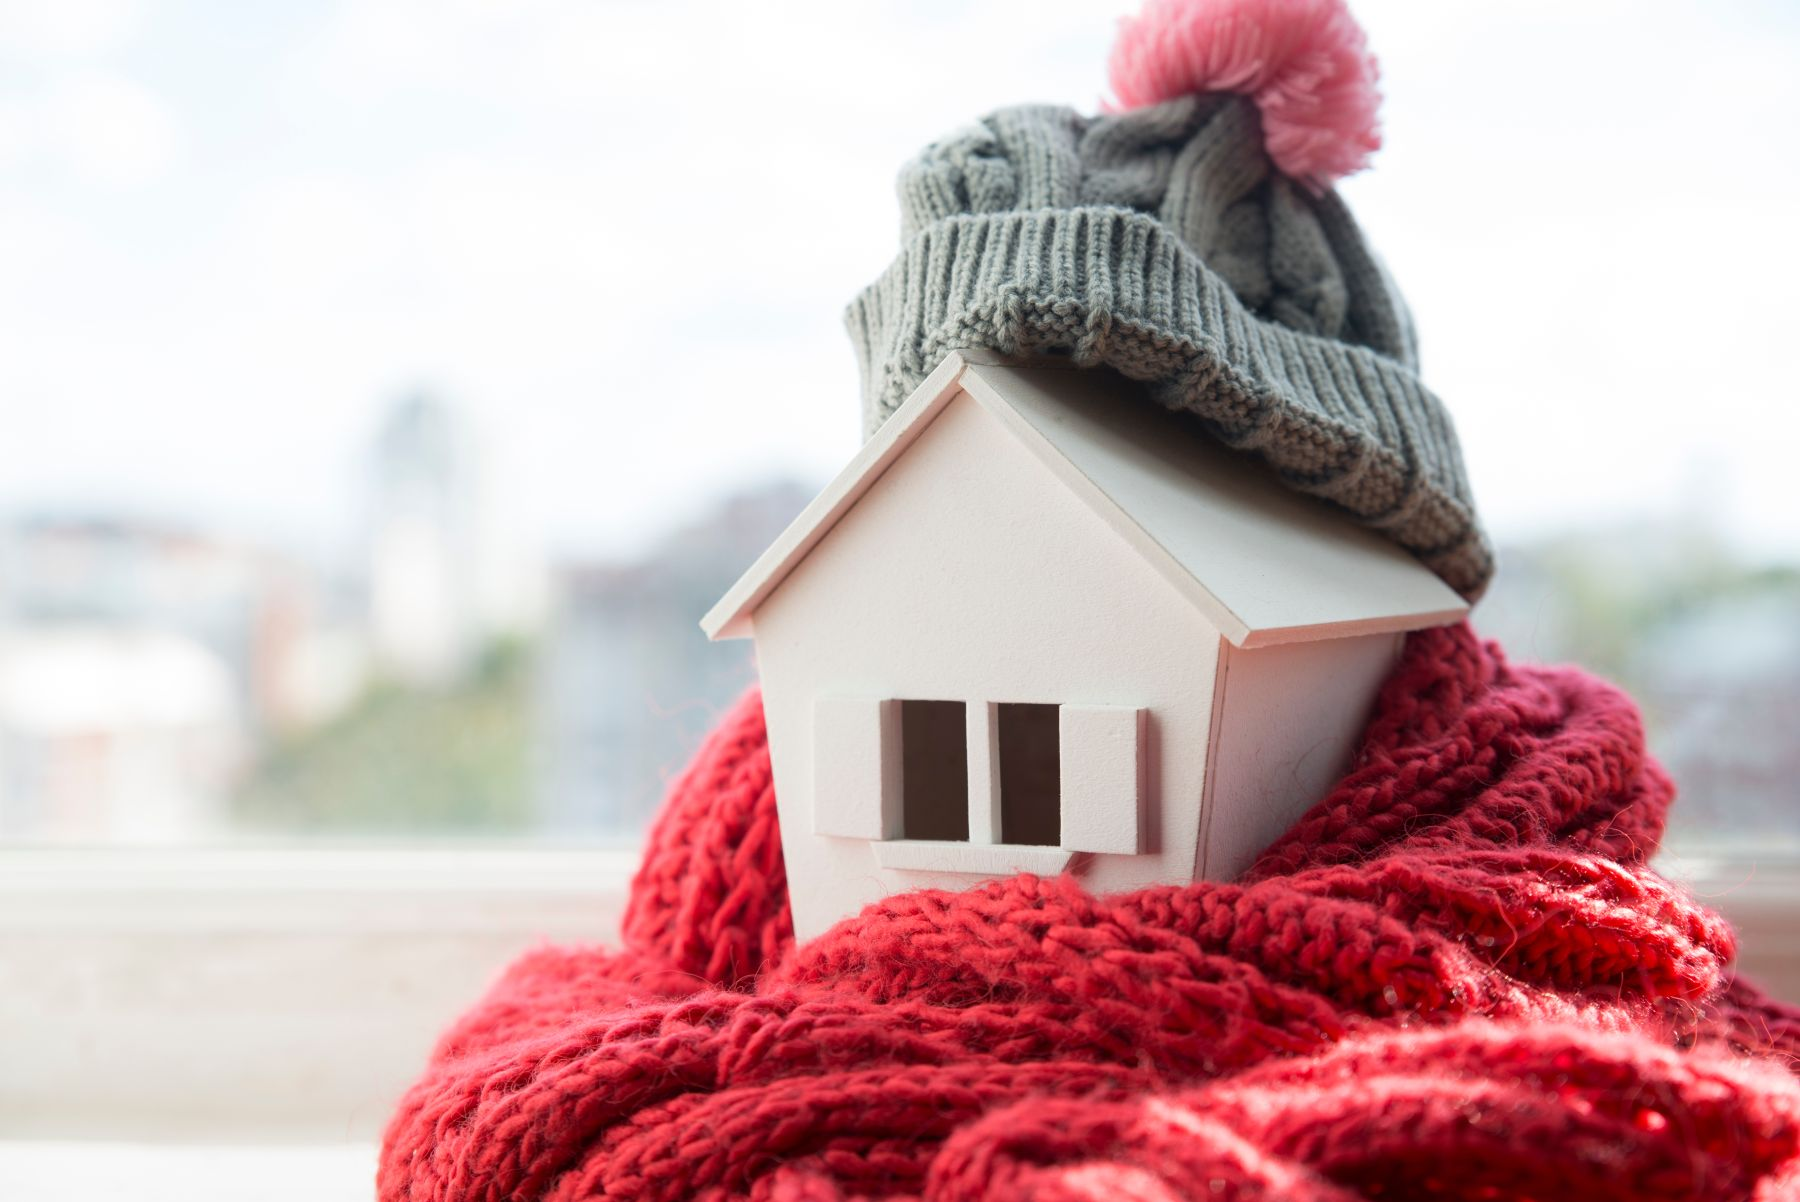 sheep wool insulation illustrated by a model of a house wrapped in a cosy red scarf and grey bobble hat